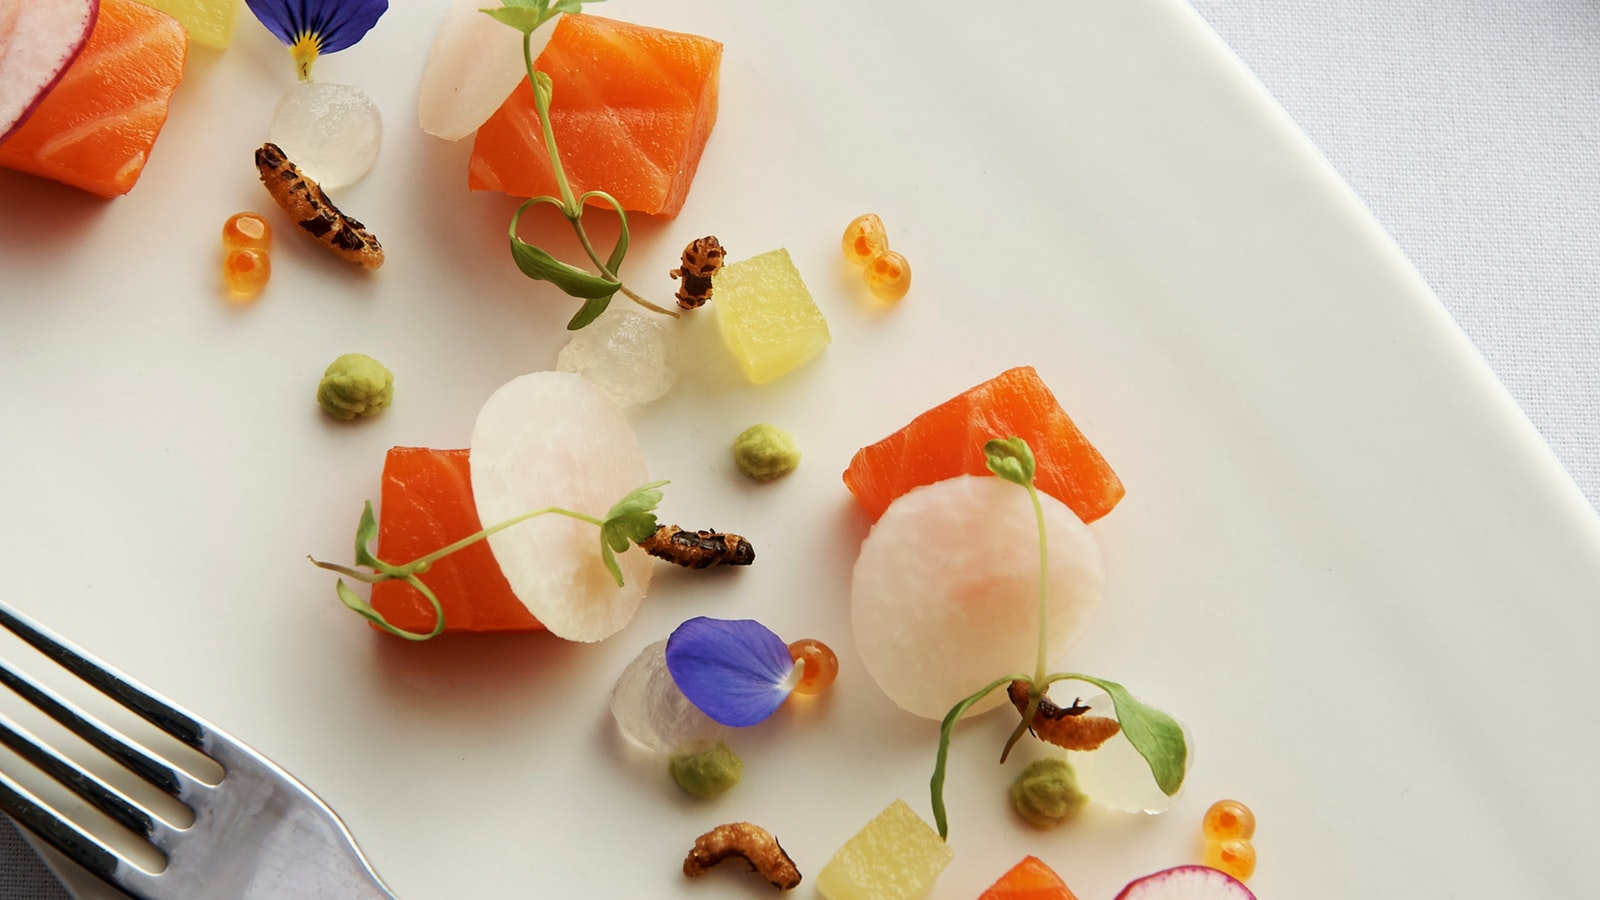 Cured salmon, salmon roe, radish, puffed rice